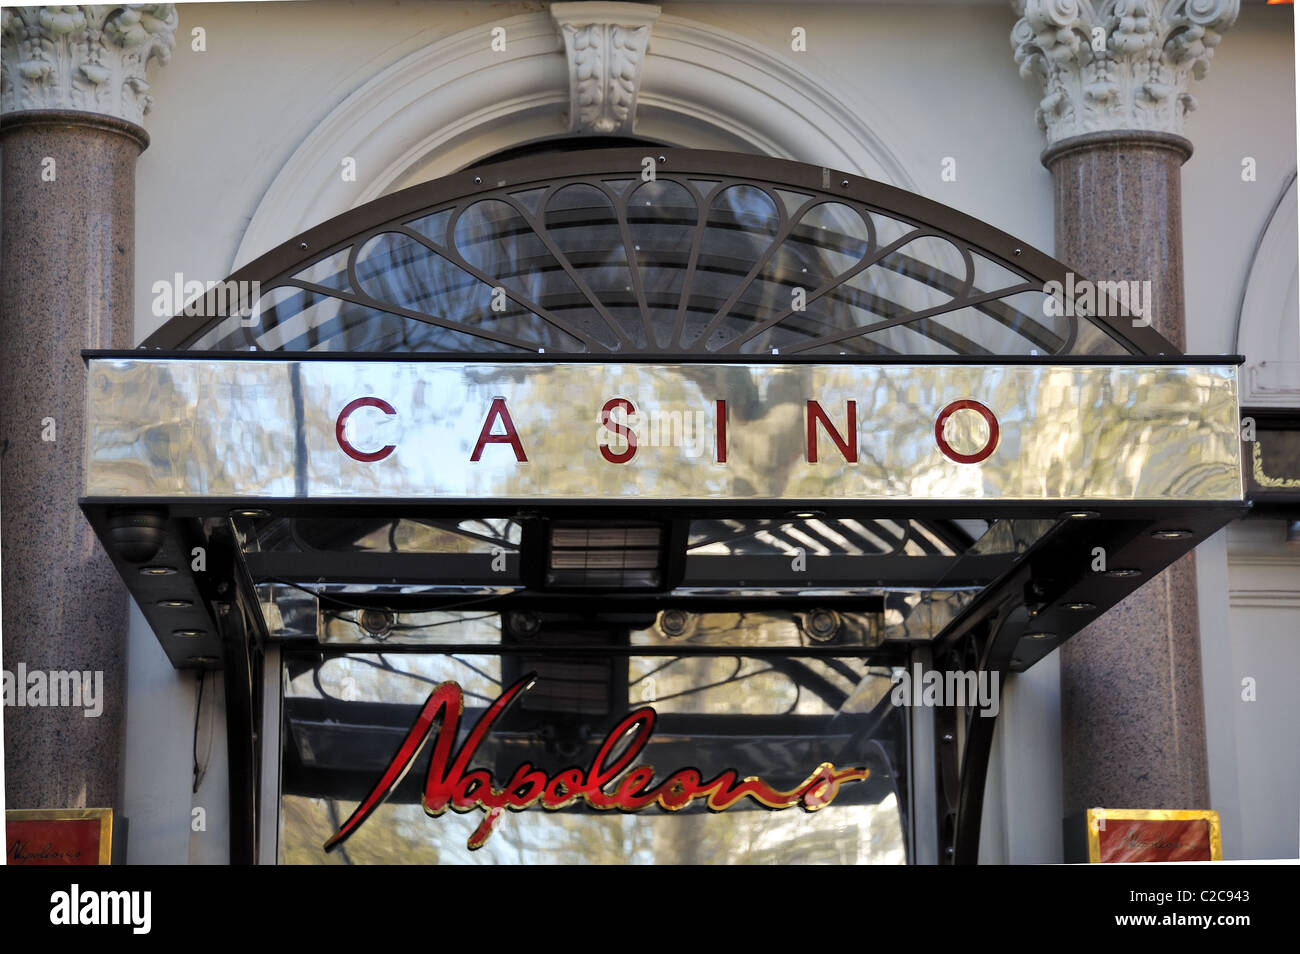 Napoleons casino sign Leicester square London - Stock Image